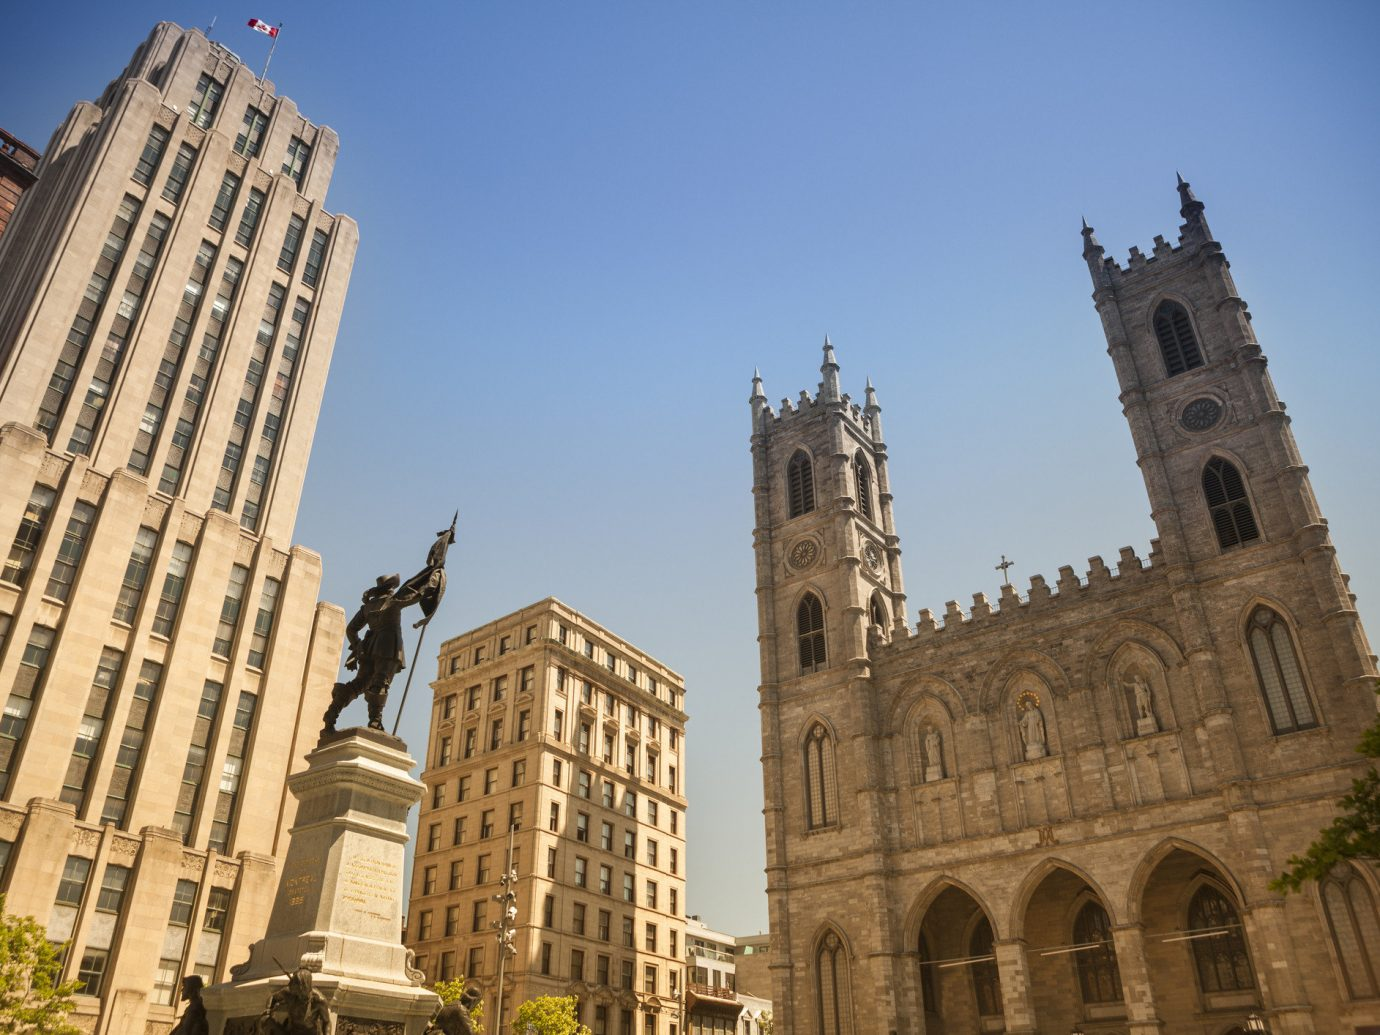 Trip Ideas building outdoor sky landmark Church tall Architecture old cathedral place of worship Downtown big facade spire gothic architecture City tower stone day